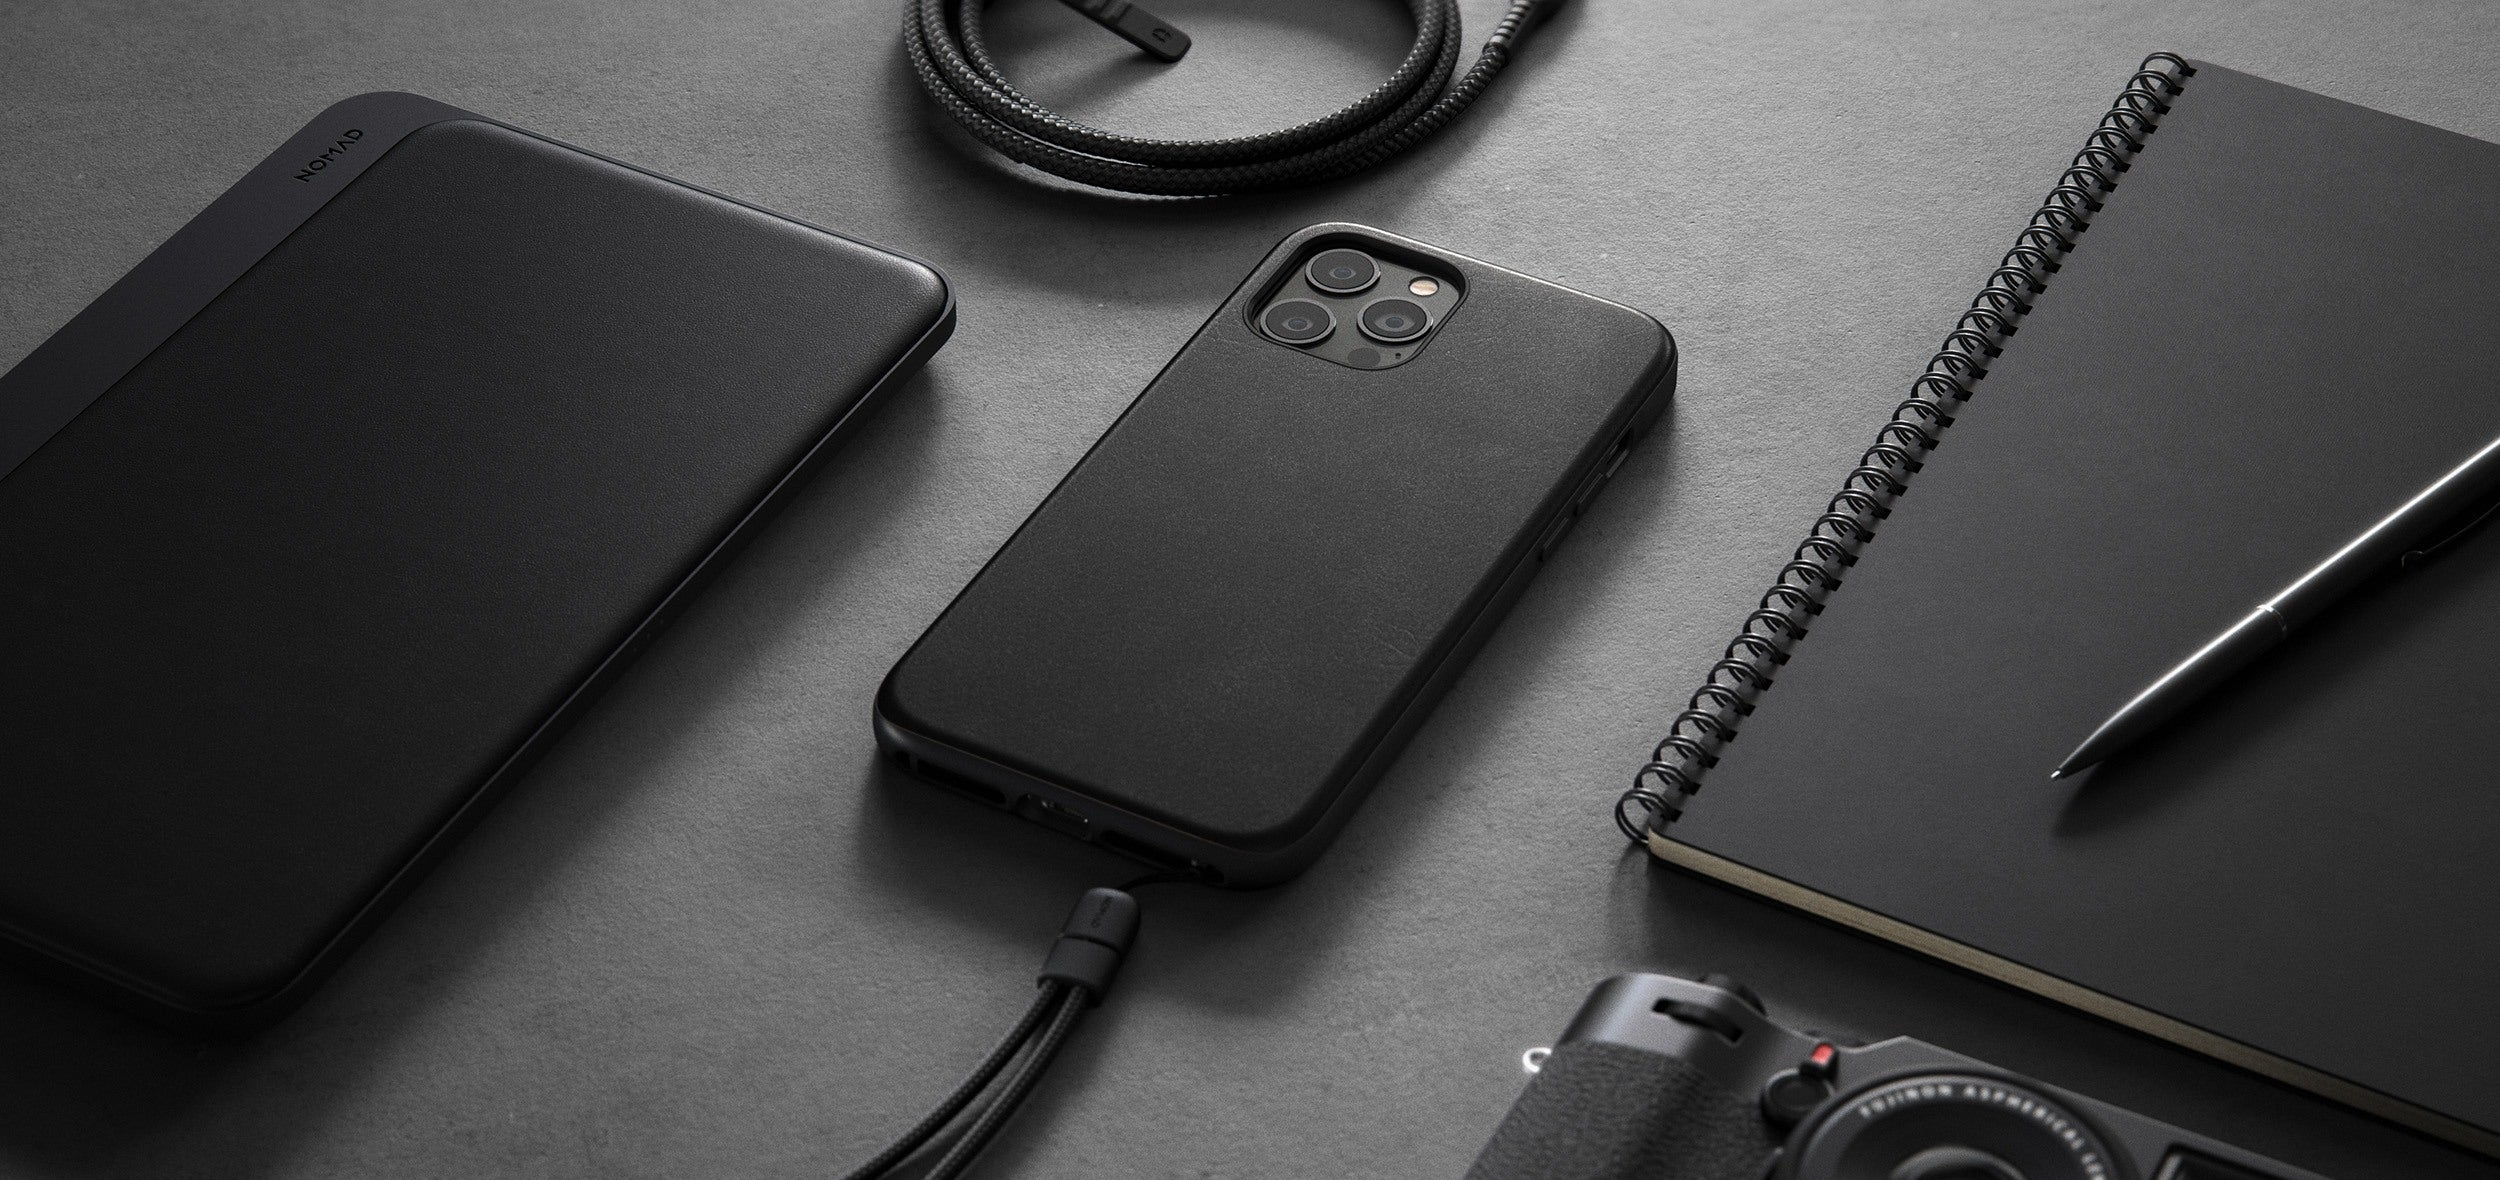 https://cdn.shopify.com/s/files/1/0384/6721/files/iPhone_12_Series_-_Rugged_Case_-_Lifestyle_05_-_Black_Leather_-_DESKTOP_eb658497-b811-4e32-9d73-c4a05f1e8269.jpg?v=1602795157